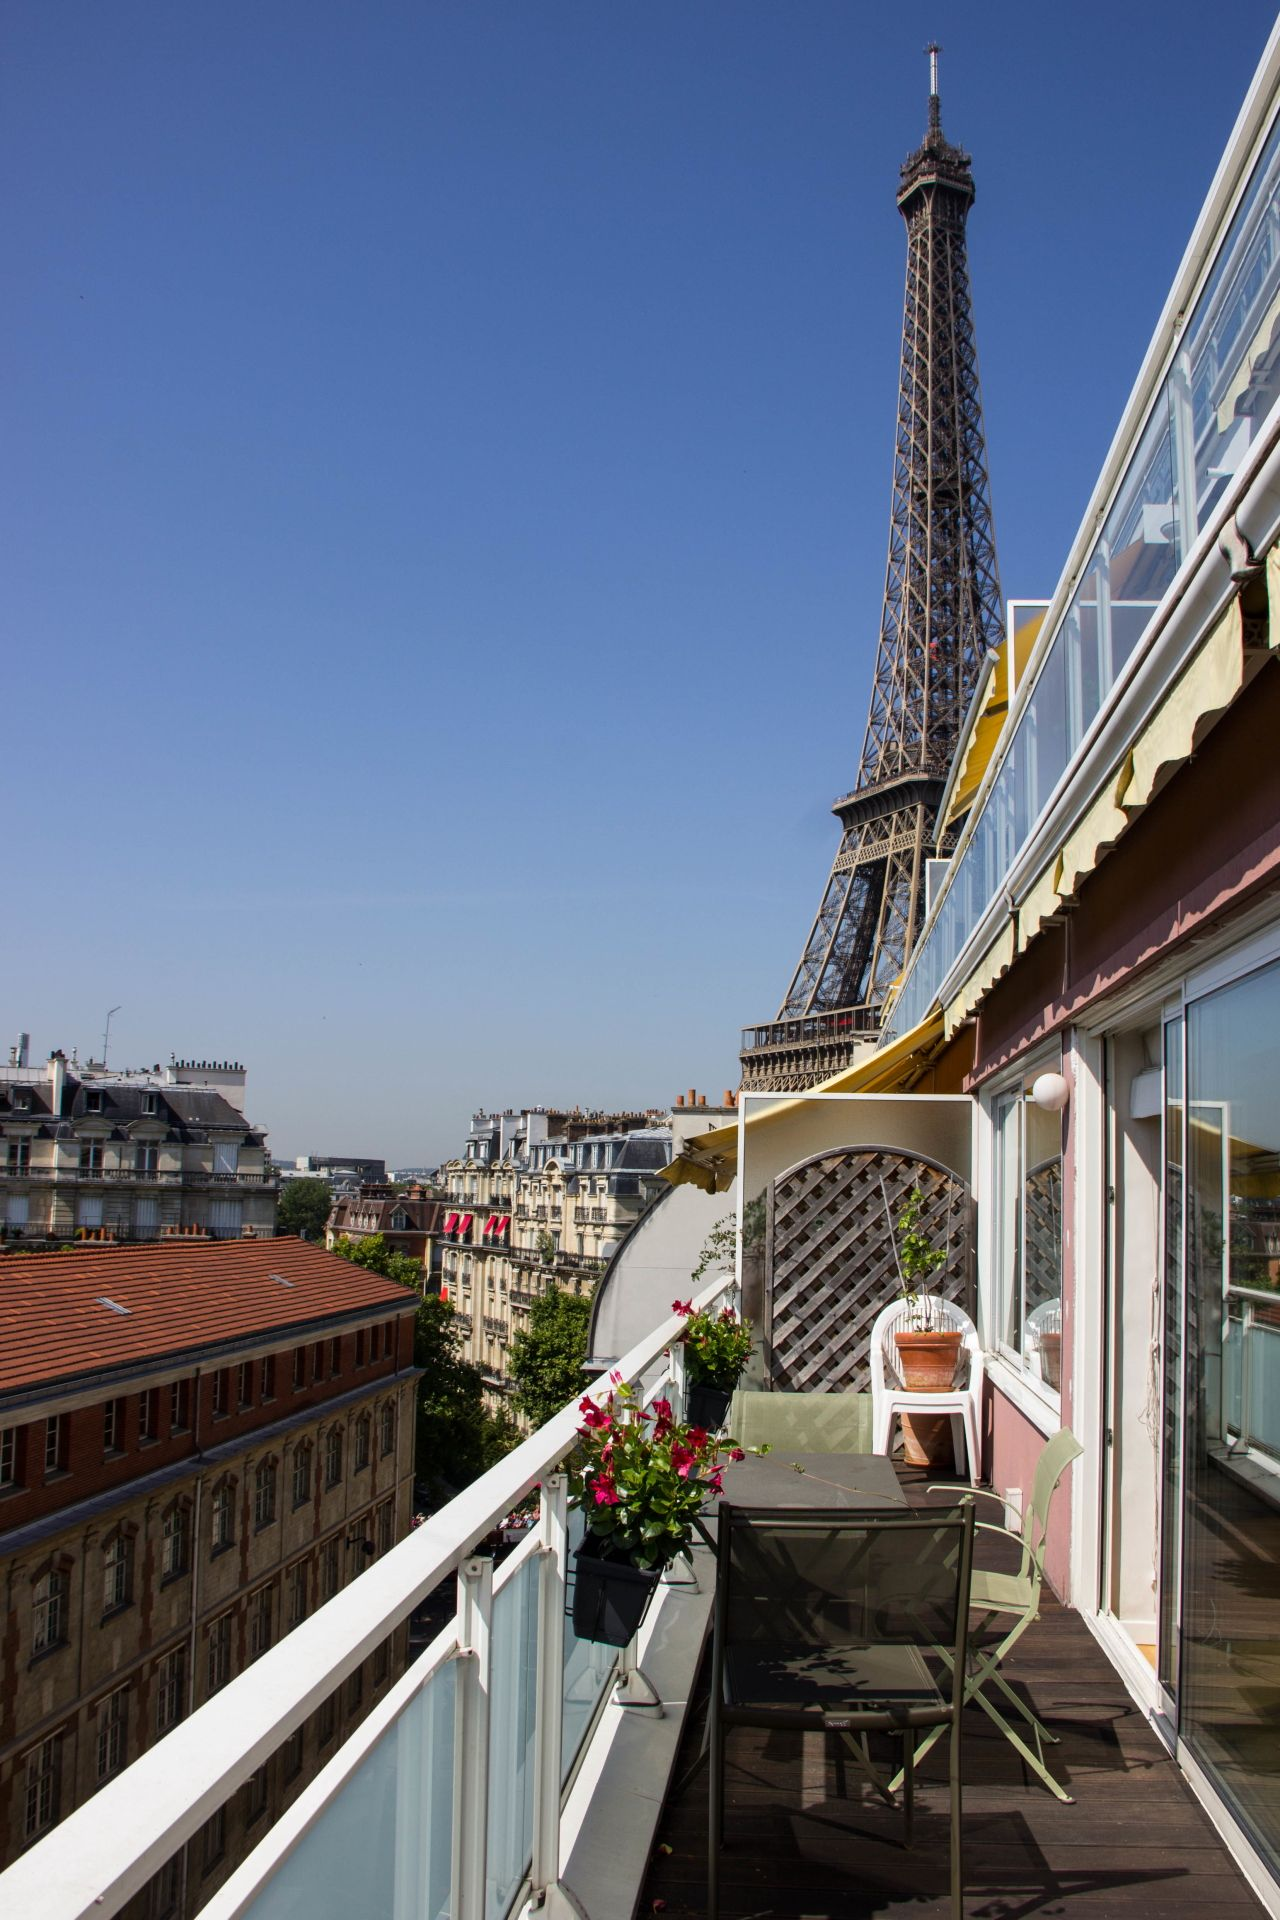 Rent Apartment, Furnished Apartment, Bedroom Apartment, House, Balcony,  Bedrooms, Apartments, Tower, Paris